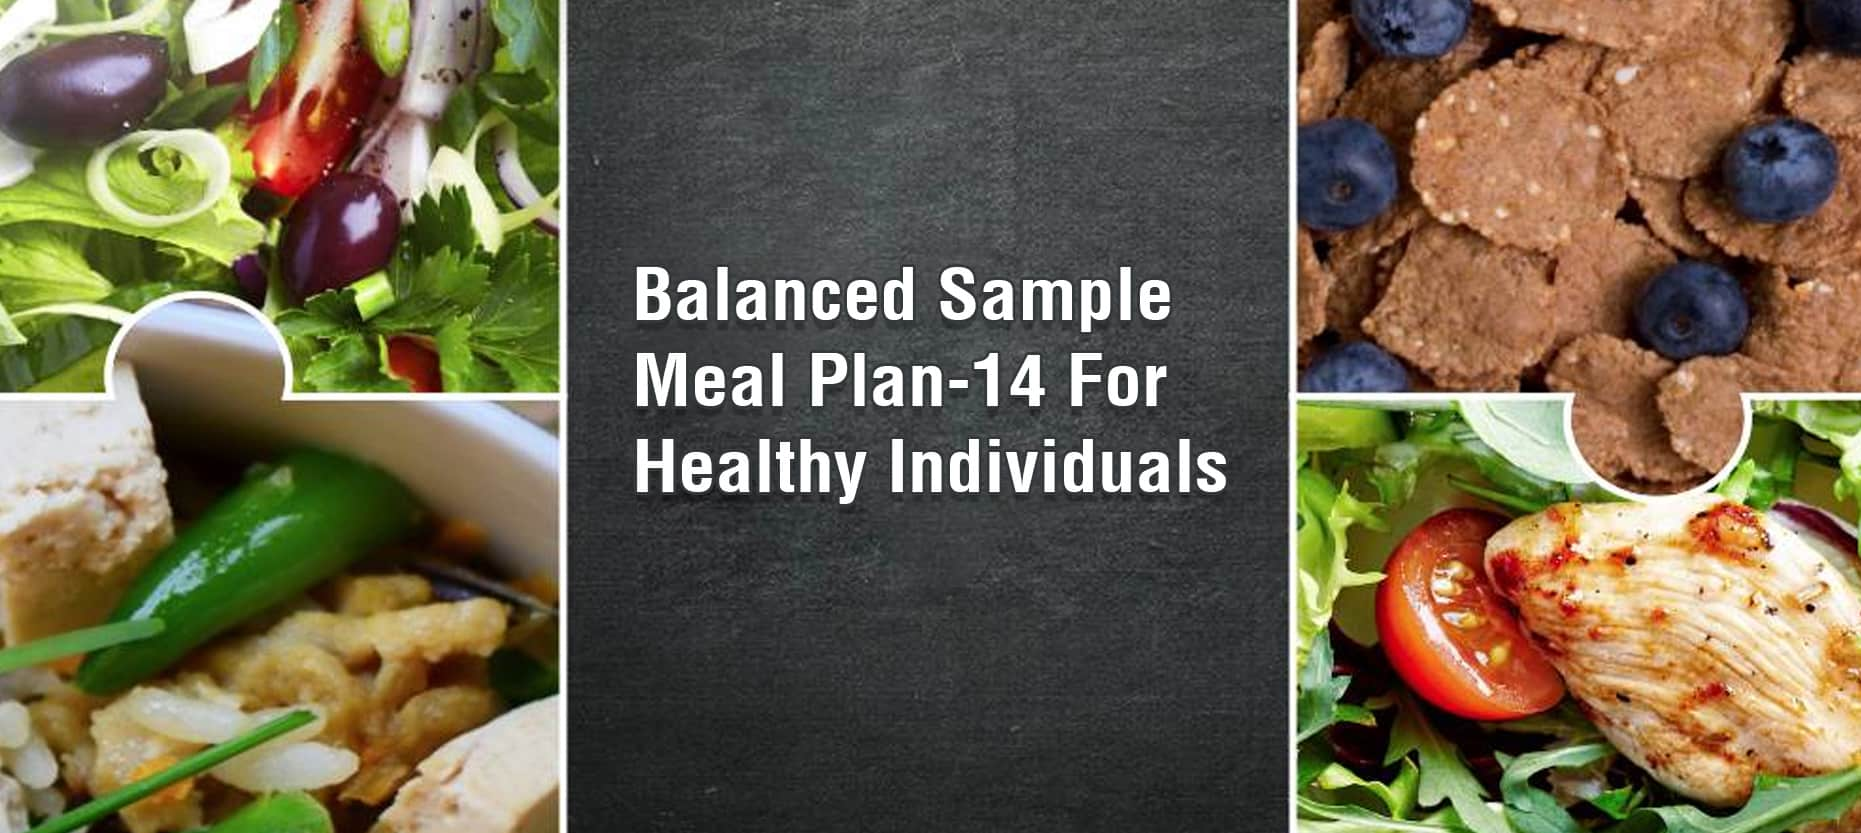 Balanced Sample Meal Plan-14 For Healthy Individuals